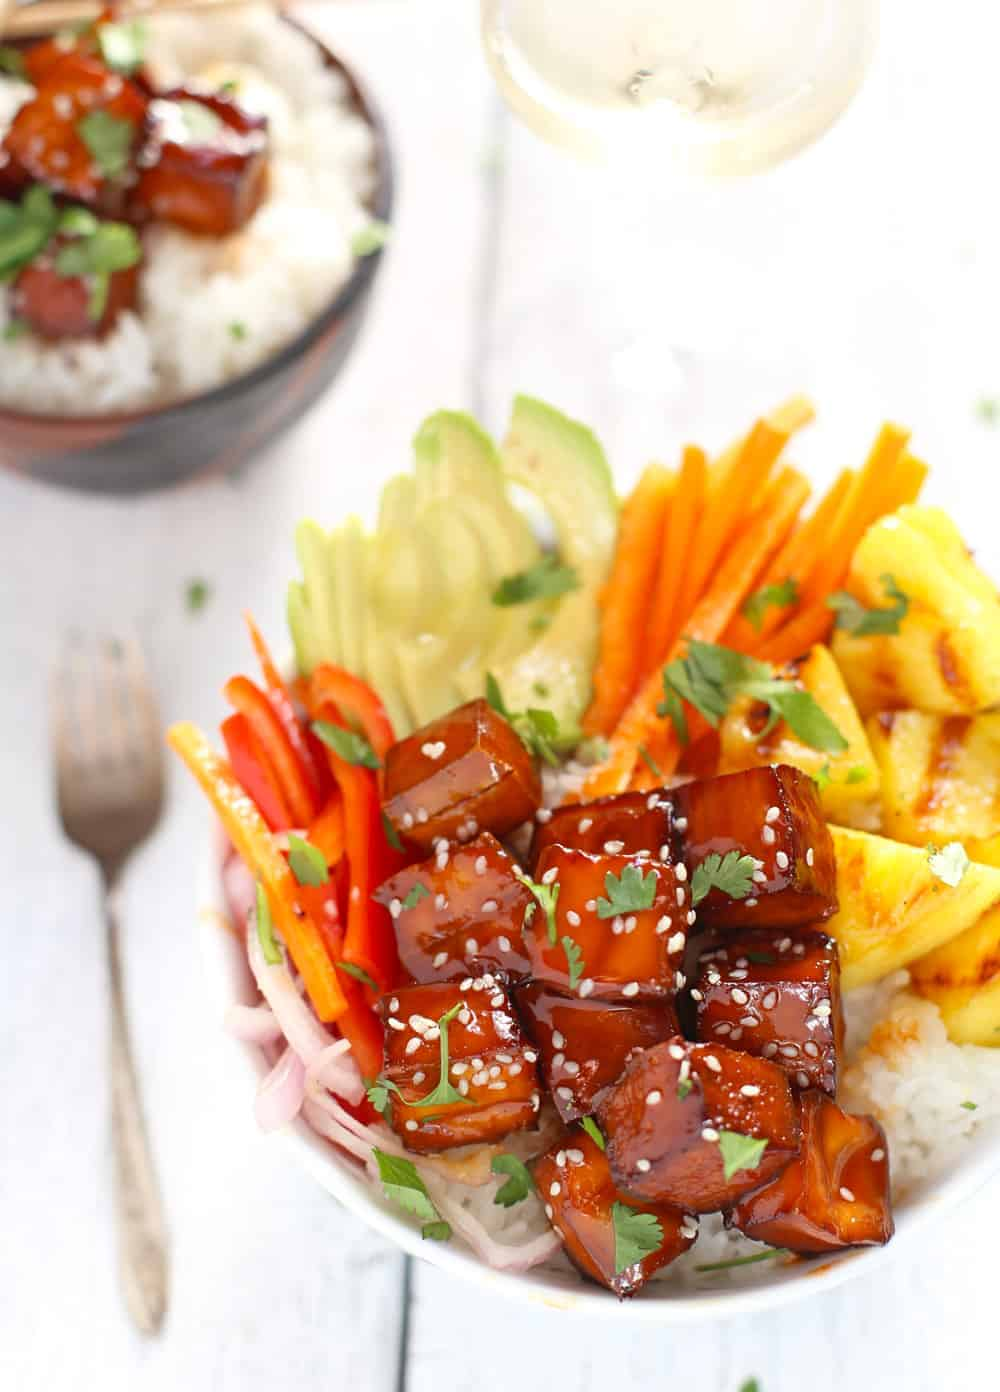 smoked bbq tofu bowls with coconut rice, grilled pineapple and veggies